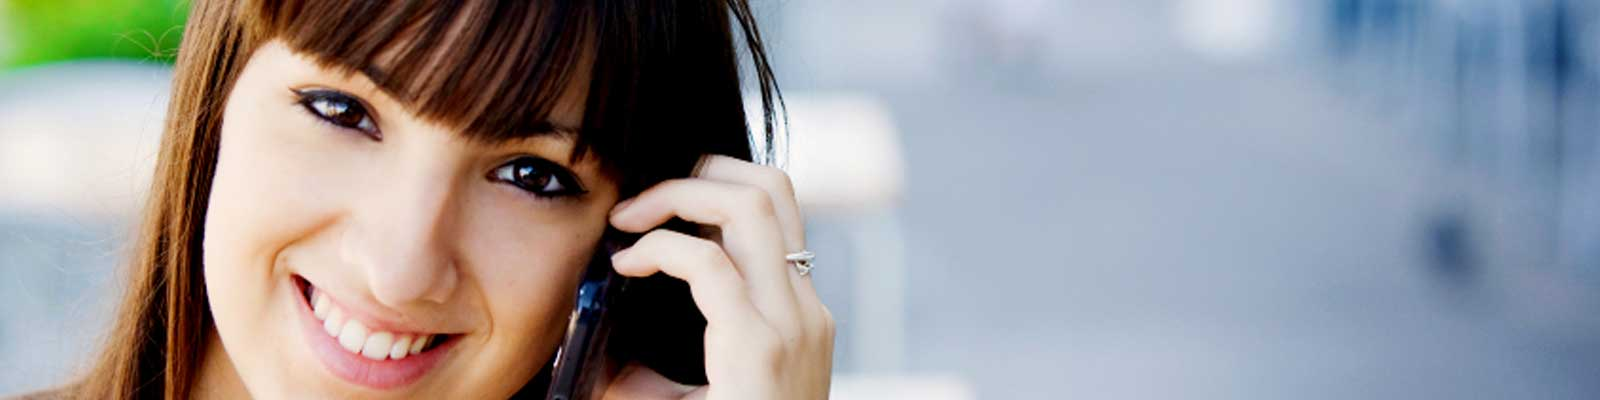 lady at Auto Repair Shop